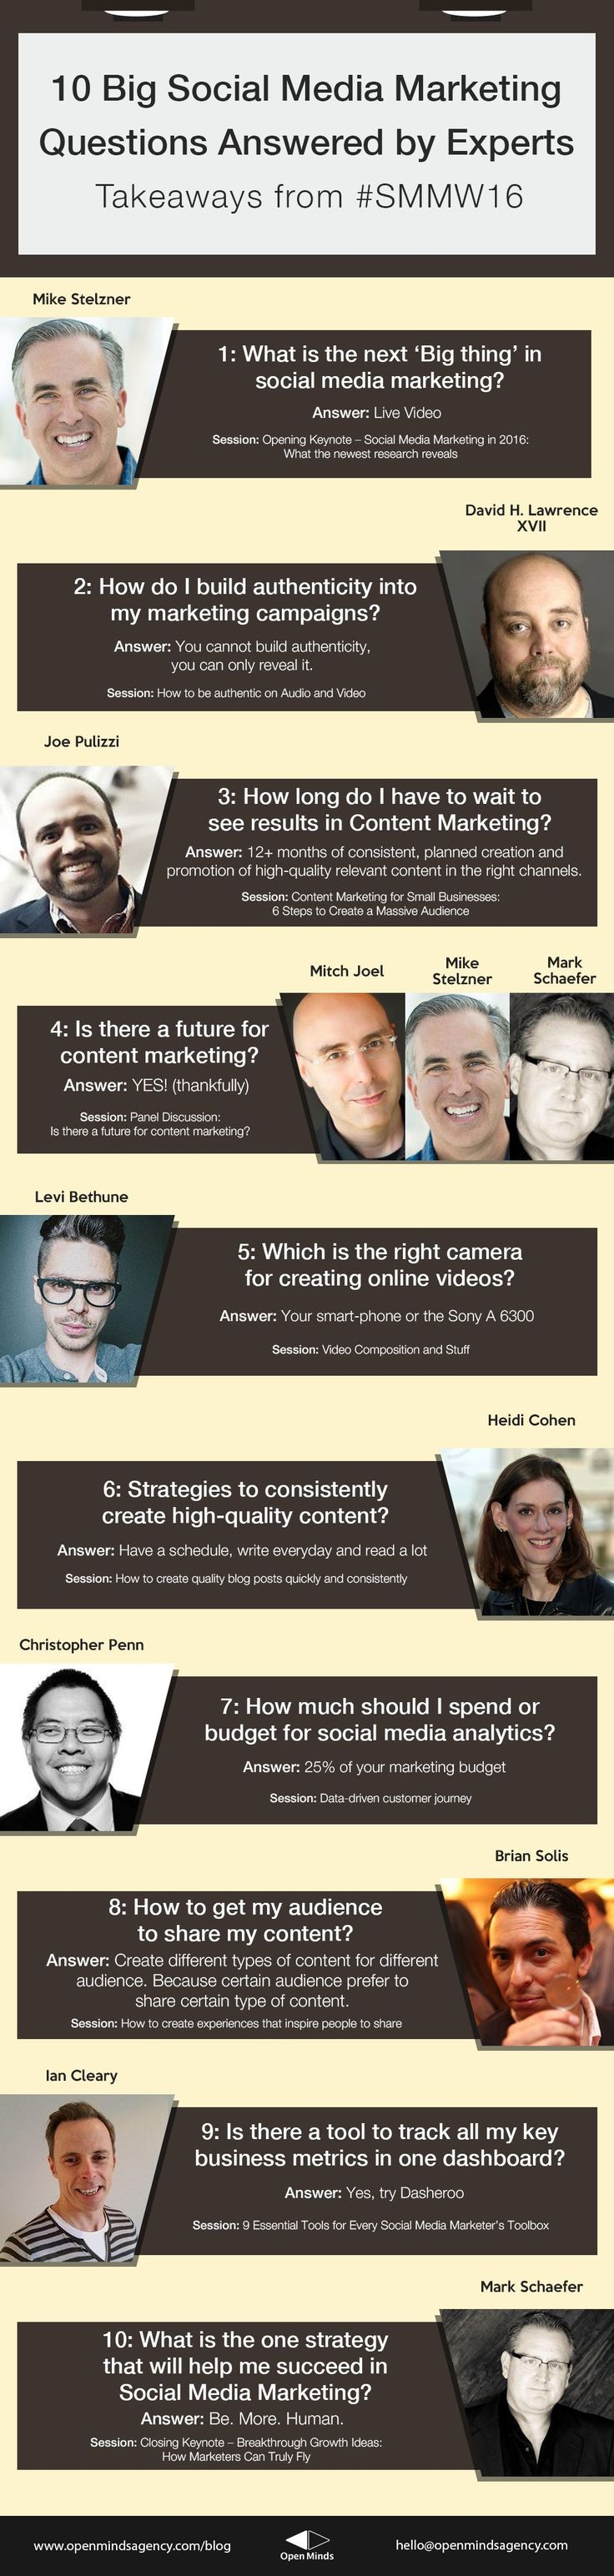 10 Social Media Marketing Questions Answered by Experts: Takeaways from SMMW16 [Click on Image] #omagency #smmw16 #socialmedia #infographic